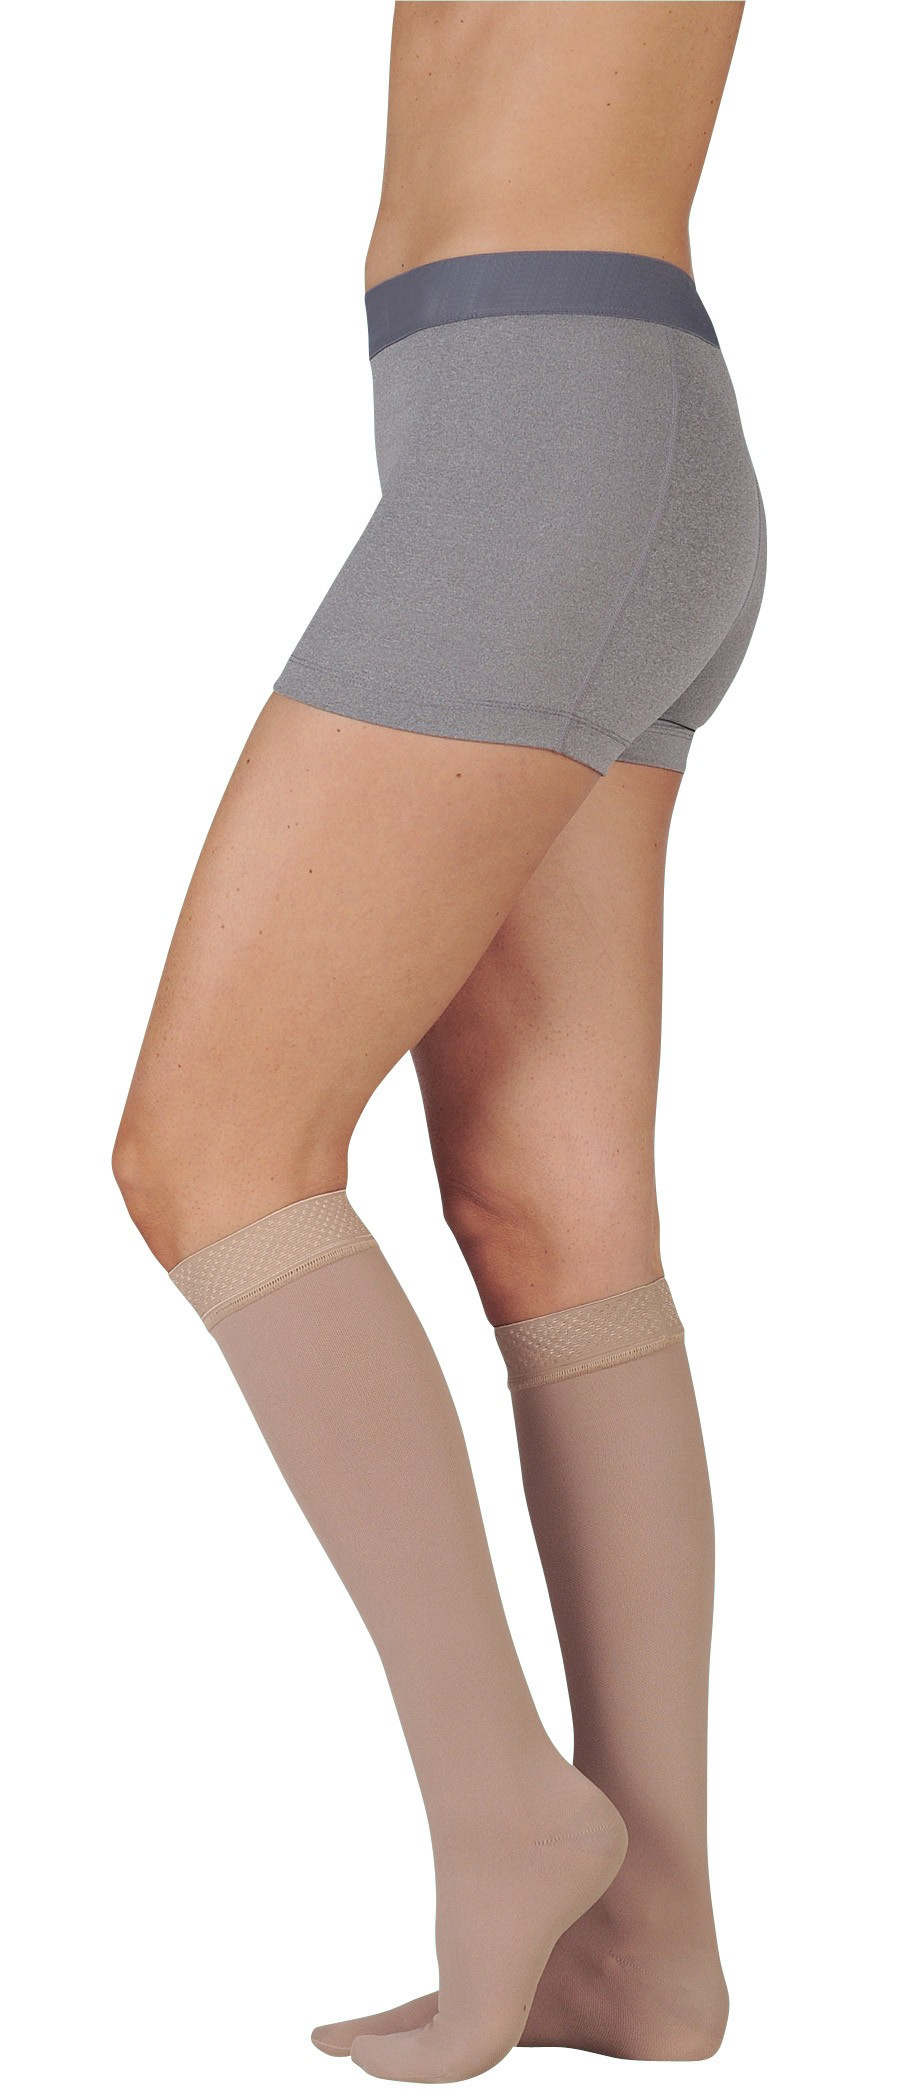 61c3ee505 Juzo Dynamic Max 3511MX 20-30 mmHg Knee High Stockings with 5cm Silicone  Border